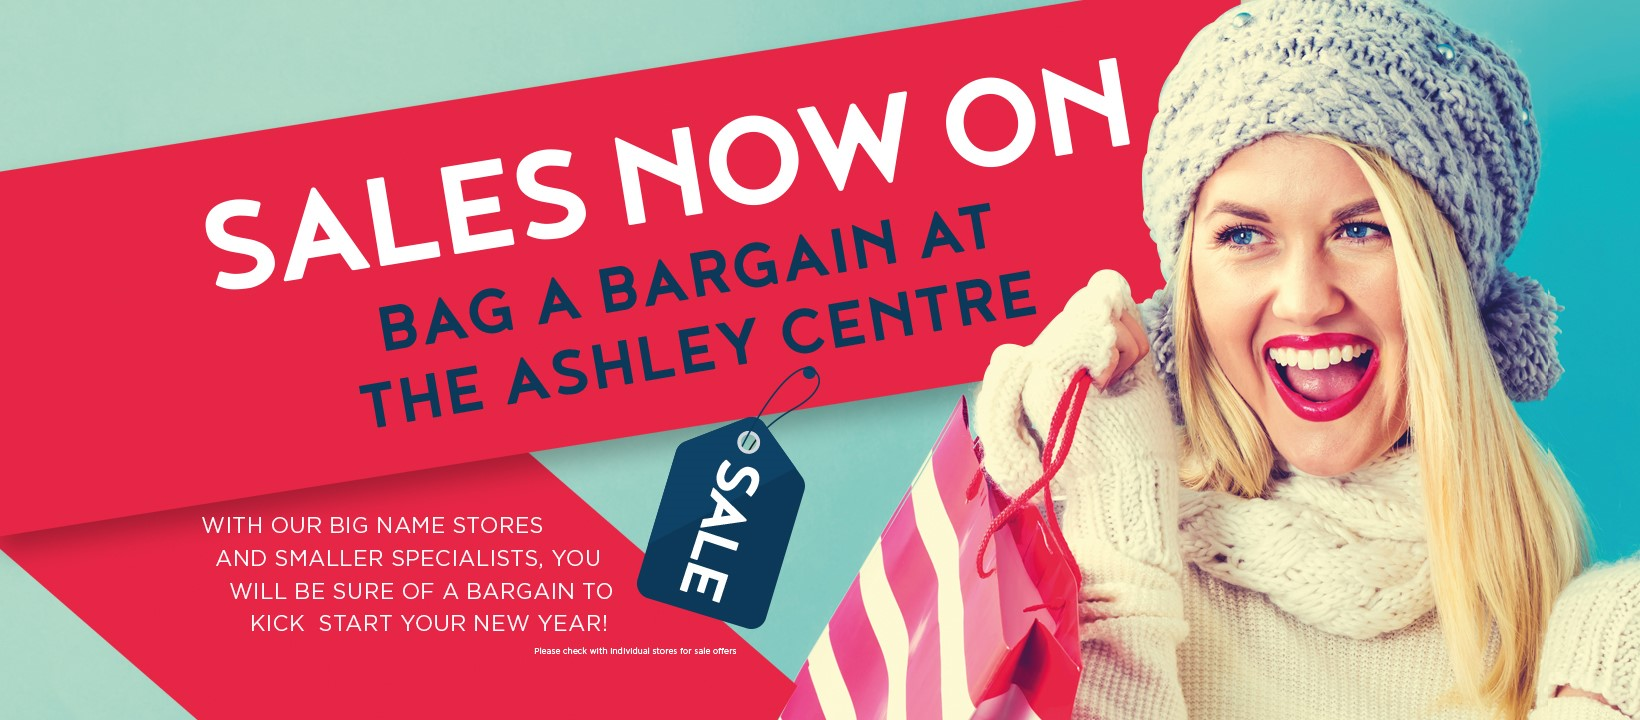 Sales at The Ashley Centre